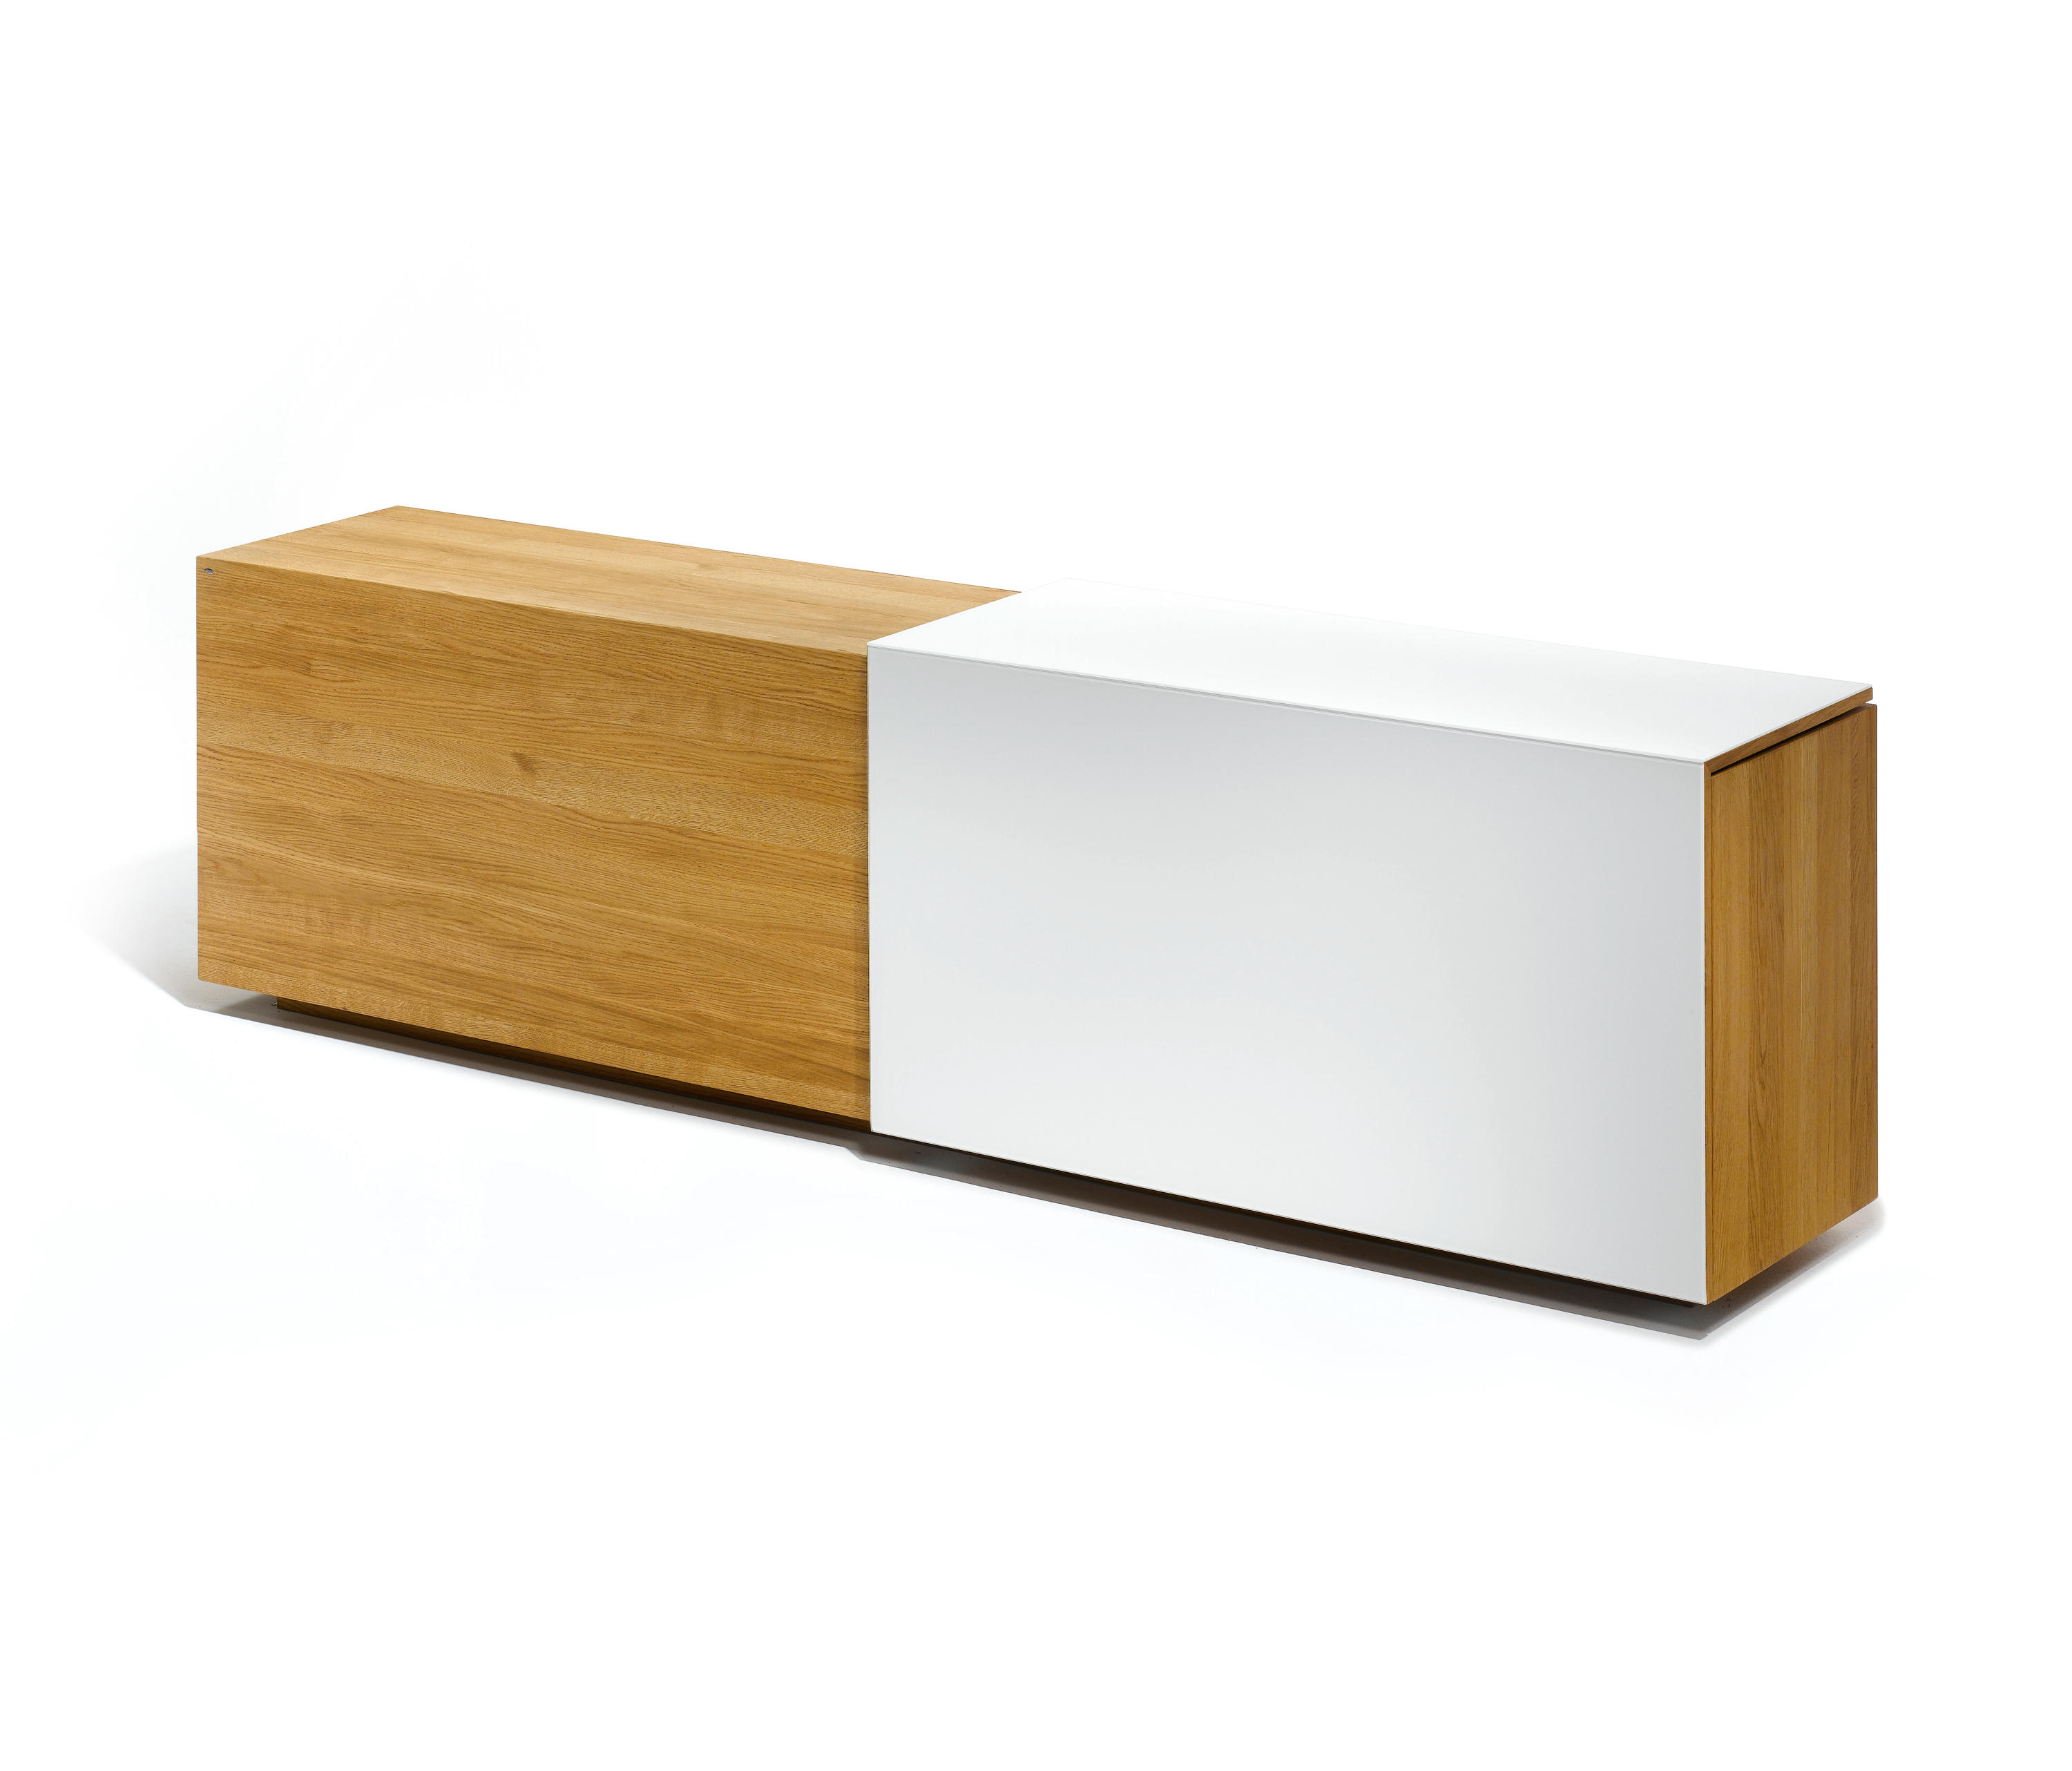 cubus sideboard sideboards from team 7 architonic. Black Bedroom Furniture Sets. Home Design Ideas